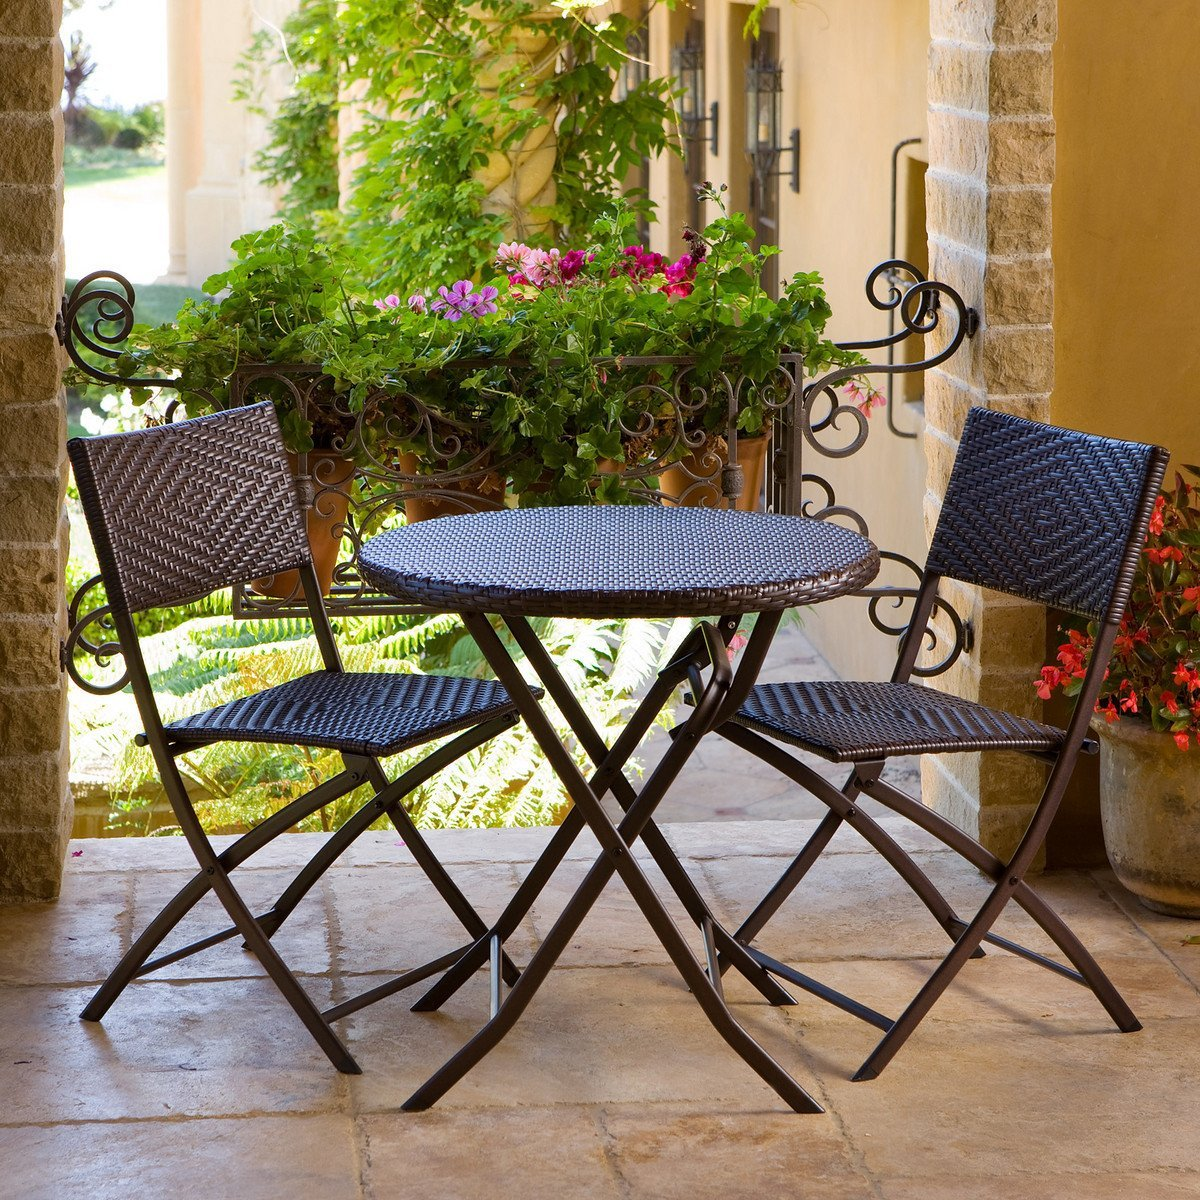 Simple Chairs And Round Table Of Small Balcony Furniture